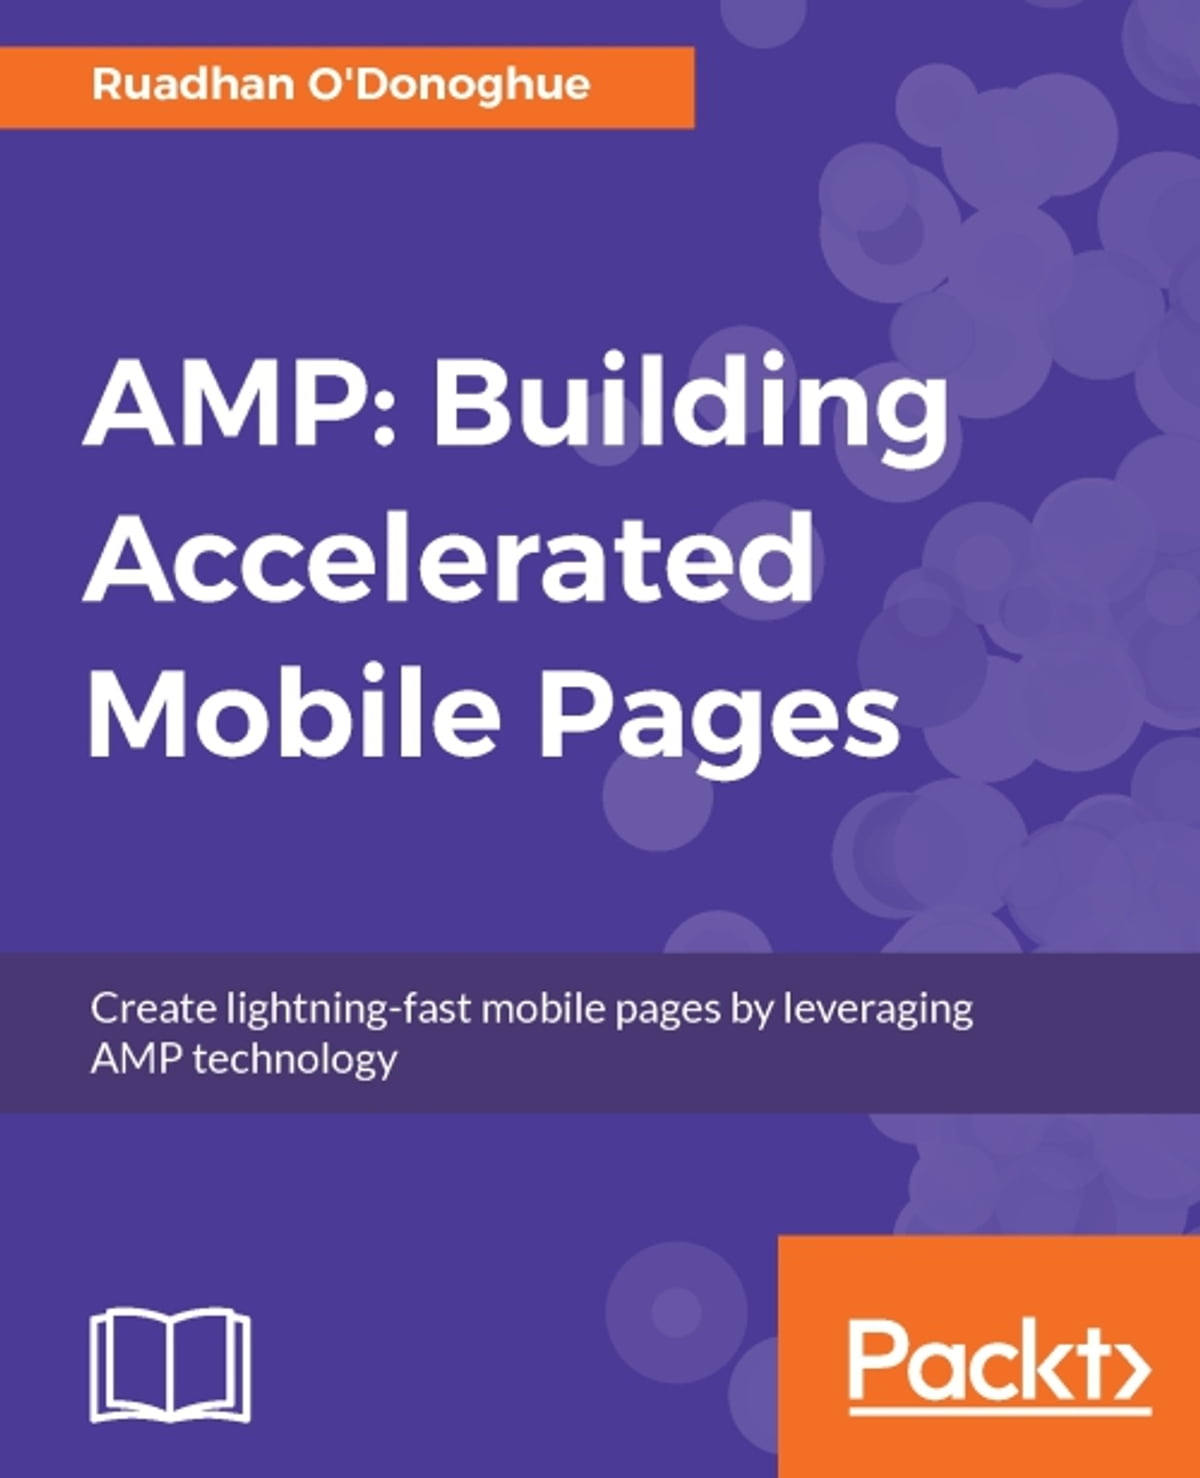 AMP: Building Accelerated Mobile Pages e-Kitap Ruadhan O'Donoghue -  9781786462190 | Rakuten Kobo